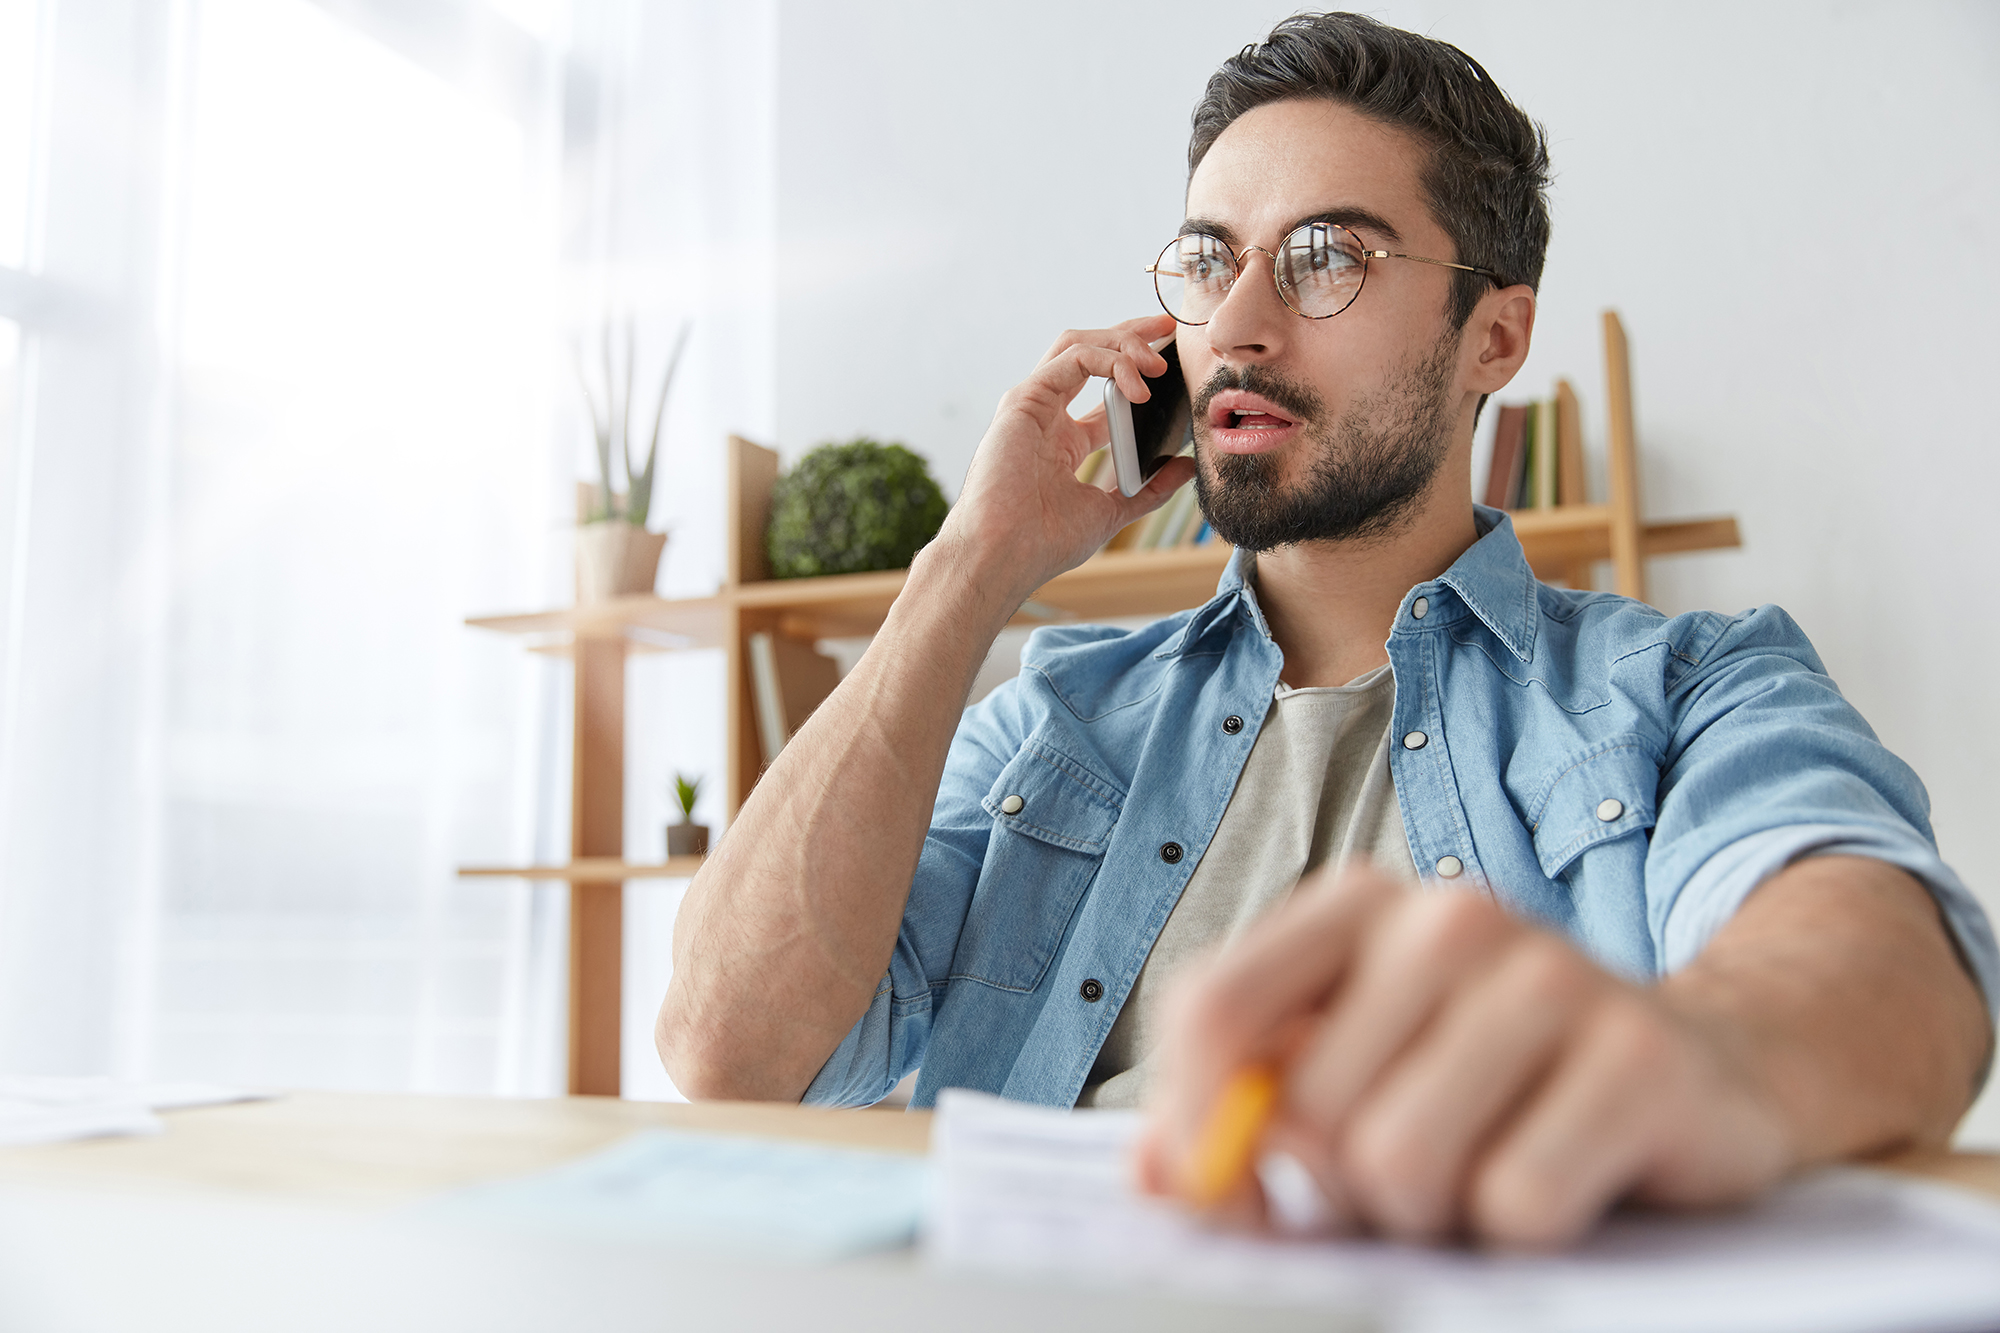 Man talking to someone on the phone. (Image: Shutterstock)